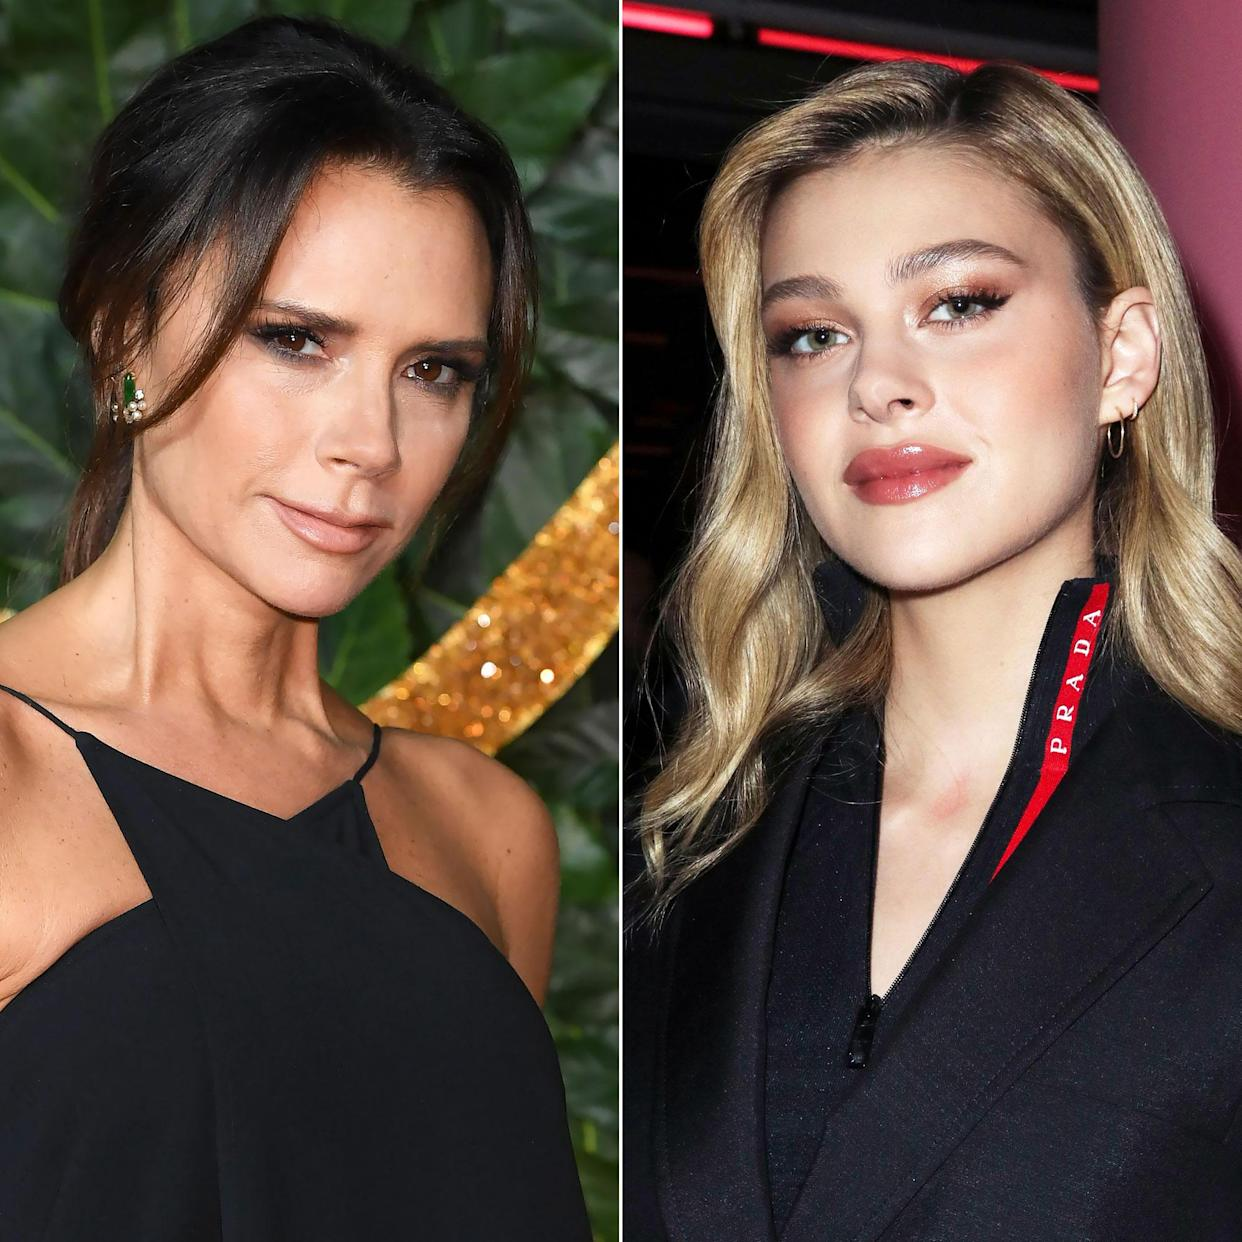 Victoria Beckham Forgives Nicola Peltz for Raiding Her Closet